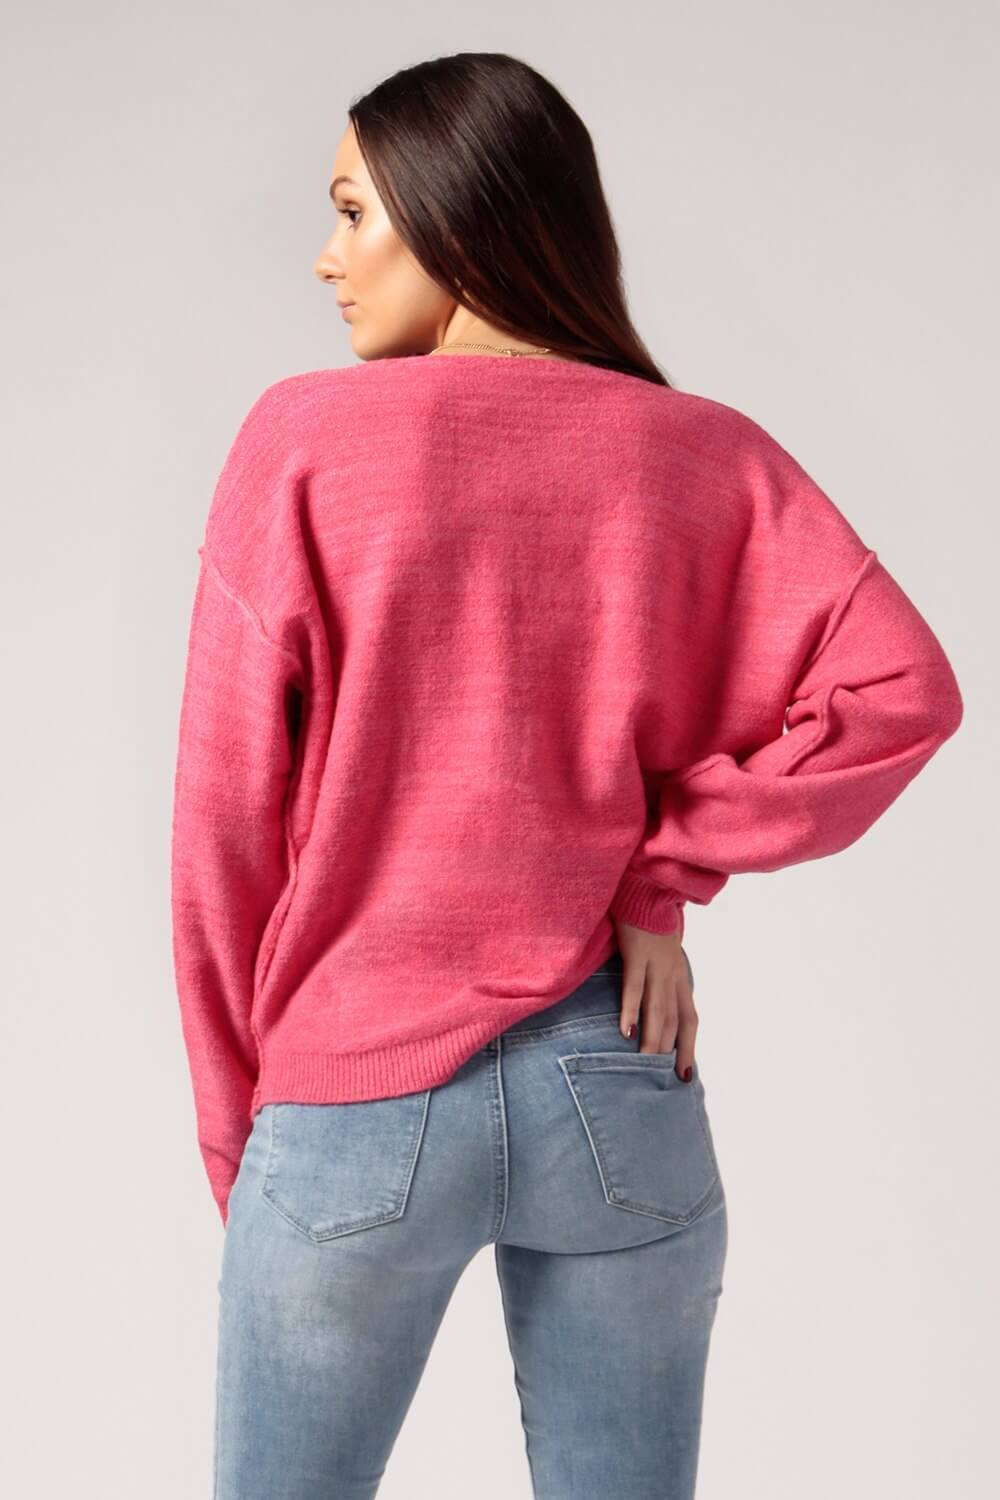 Women's pink oversized vneck sweater back